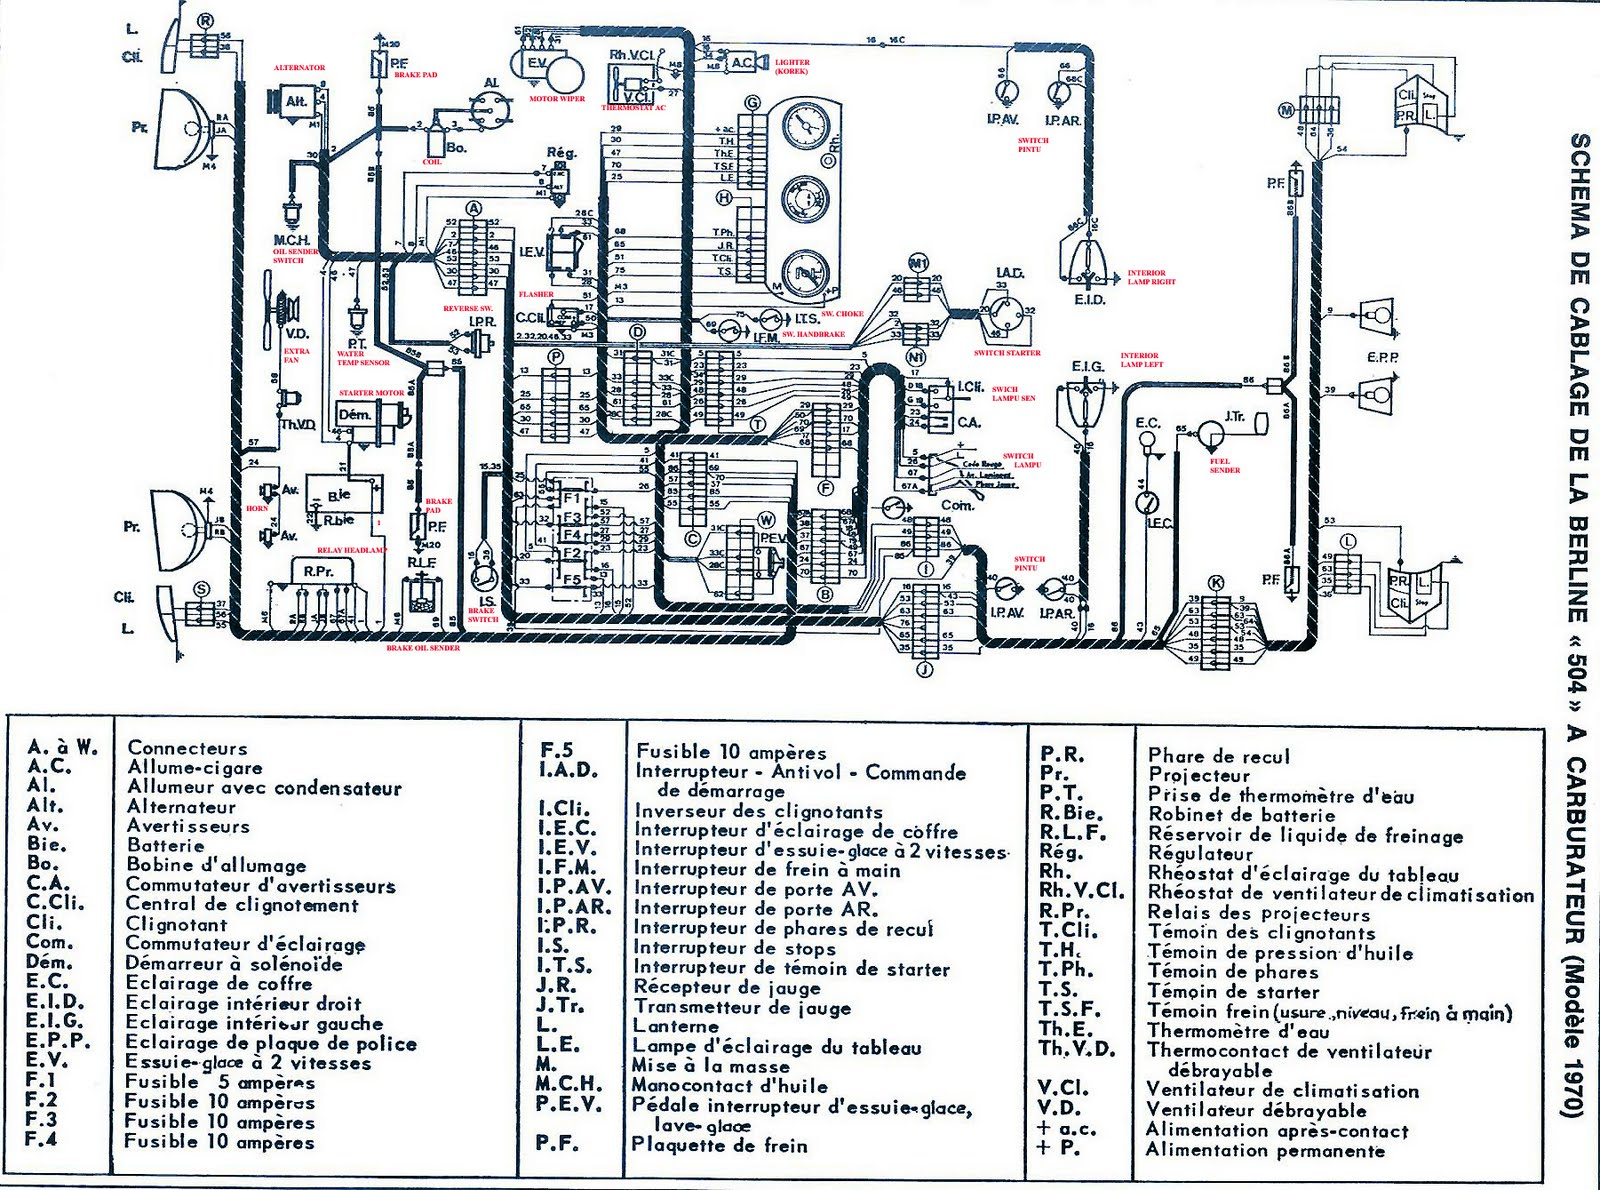 medium resolution of peugeot 505 wiring diagram wiring diagram expertpeugeot 505 wiring diagram wiring diagram for you peugeot 505